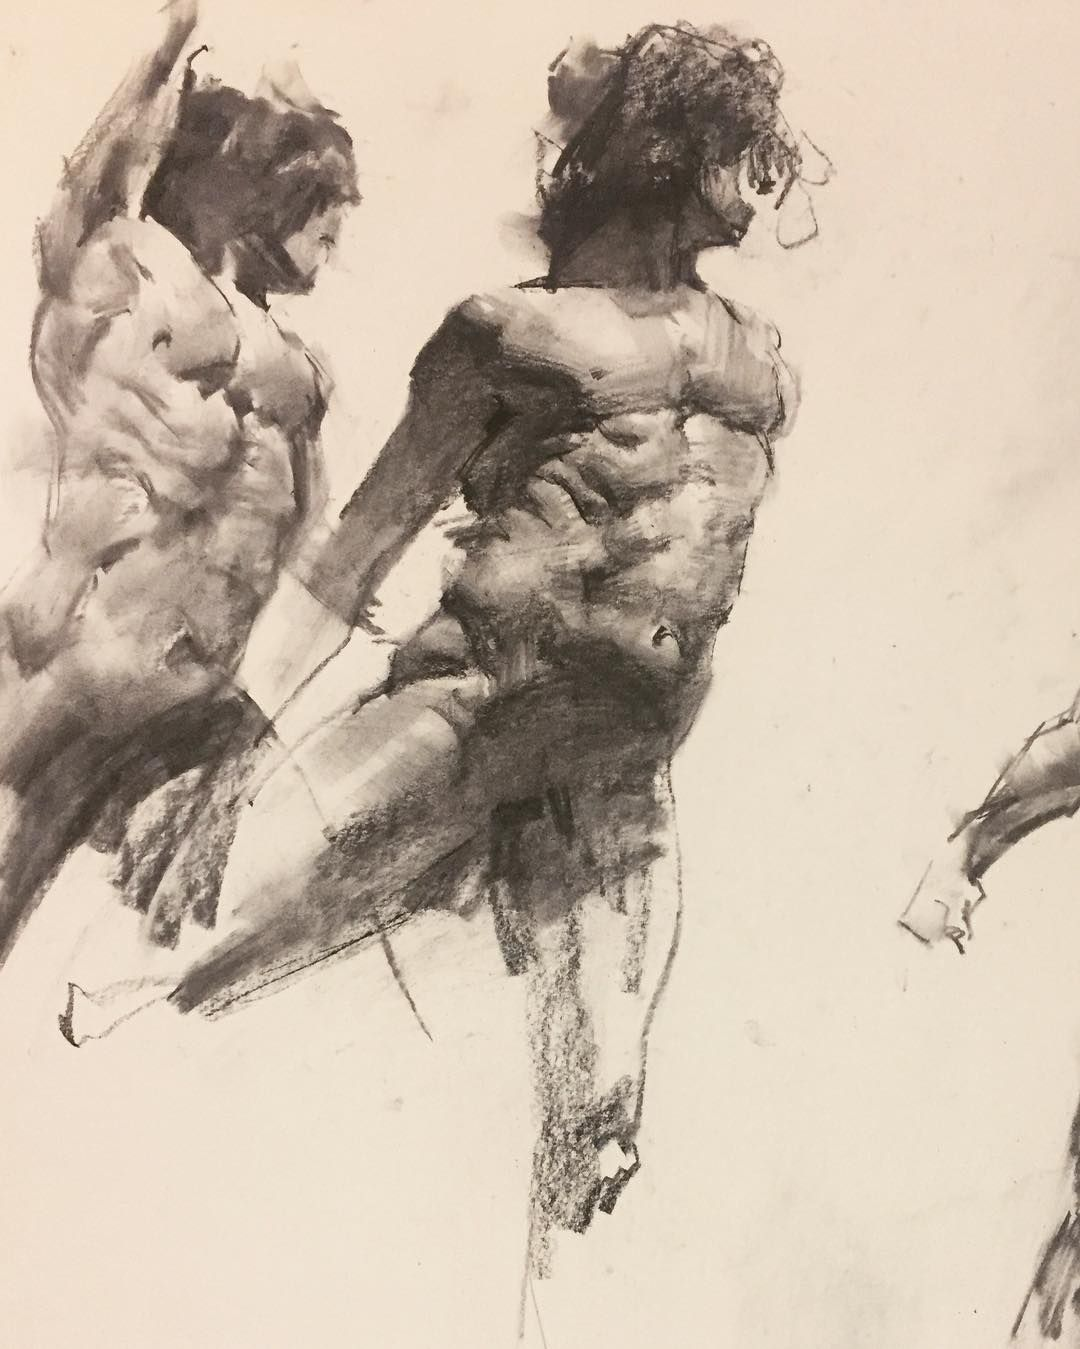 Workshop londonfinearts figure study 20 minuets with vine and charcoal pencil sketch sketchbook sketching quickdrawing artfido